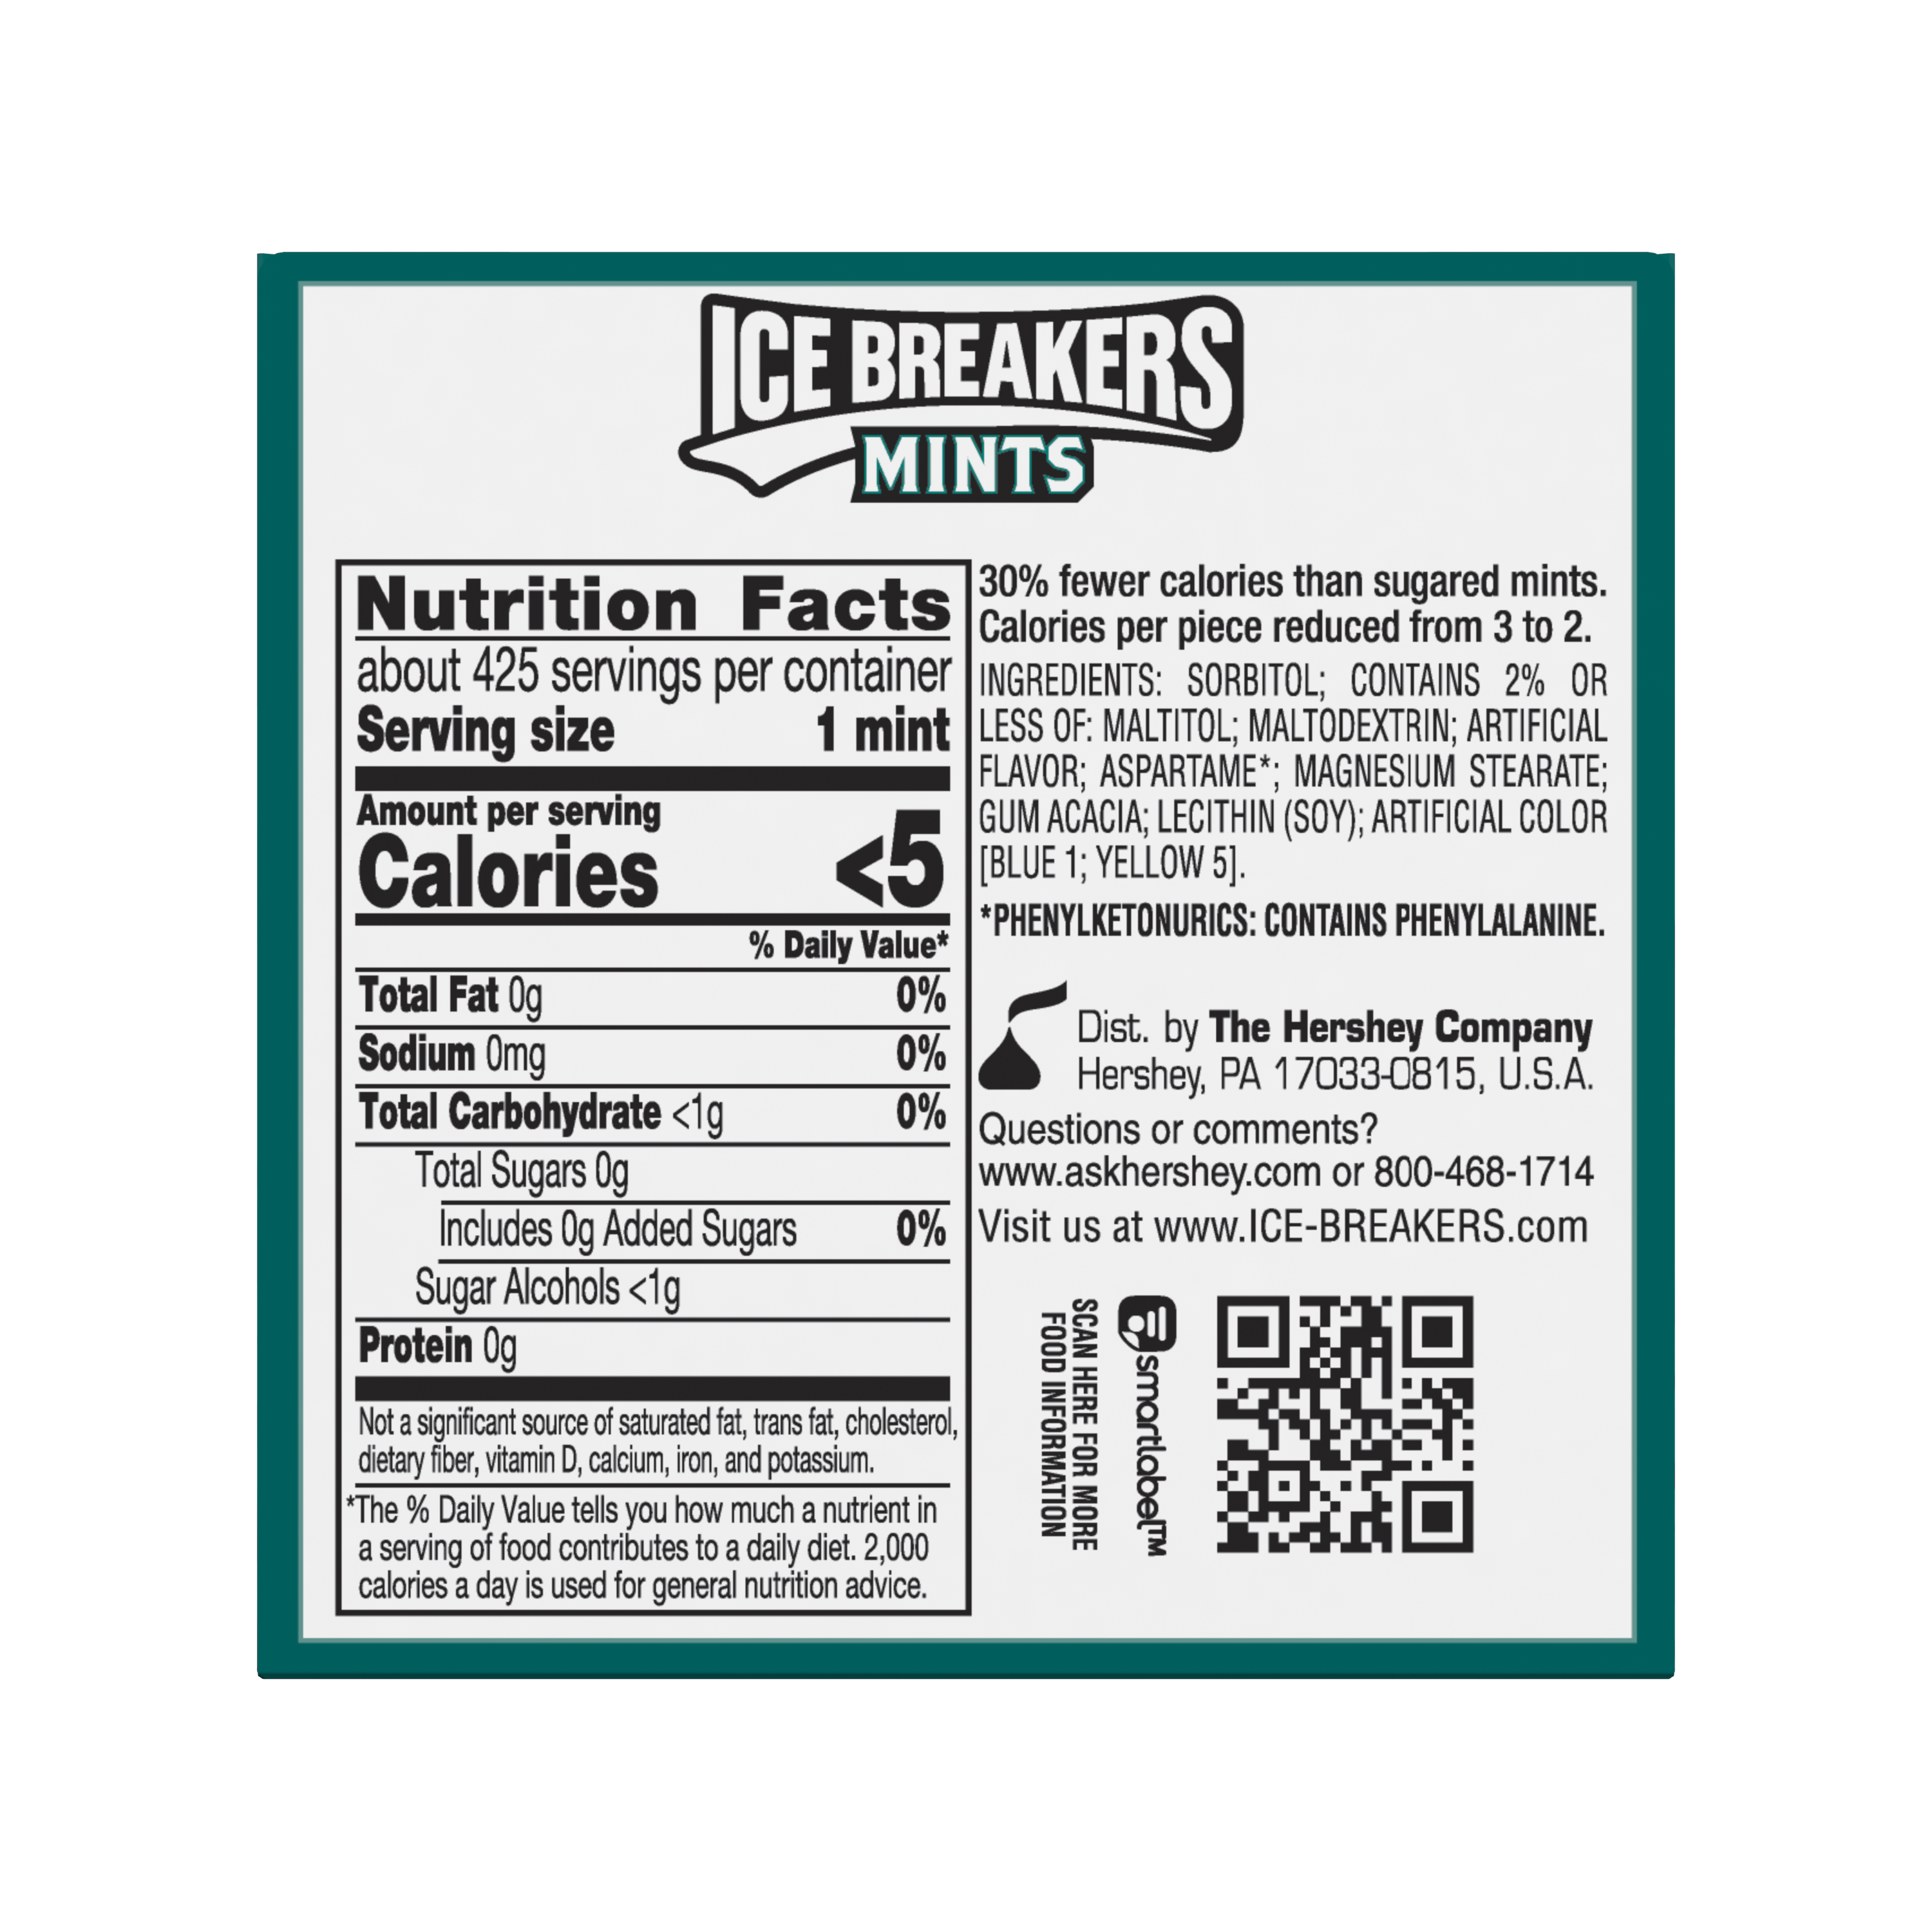 ICE BREAKERS Wintergreen Sugar Free Mints, 12 oz box, 8 pack - Back of Package